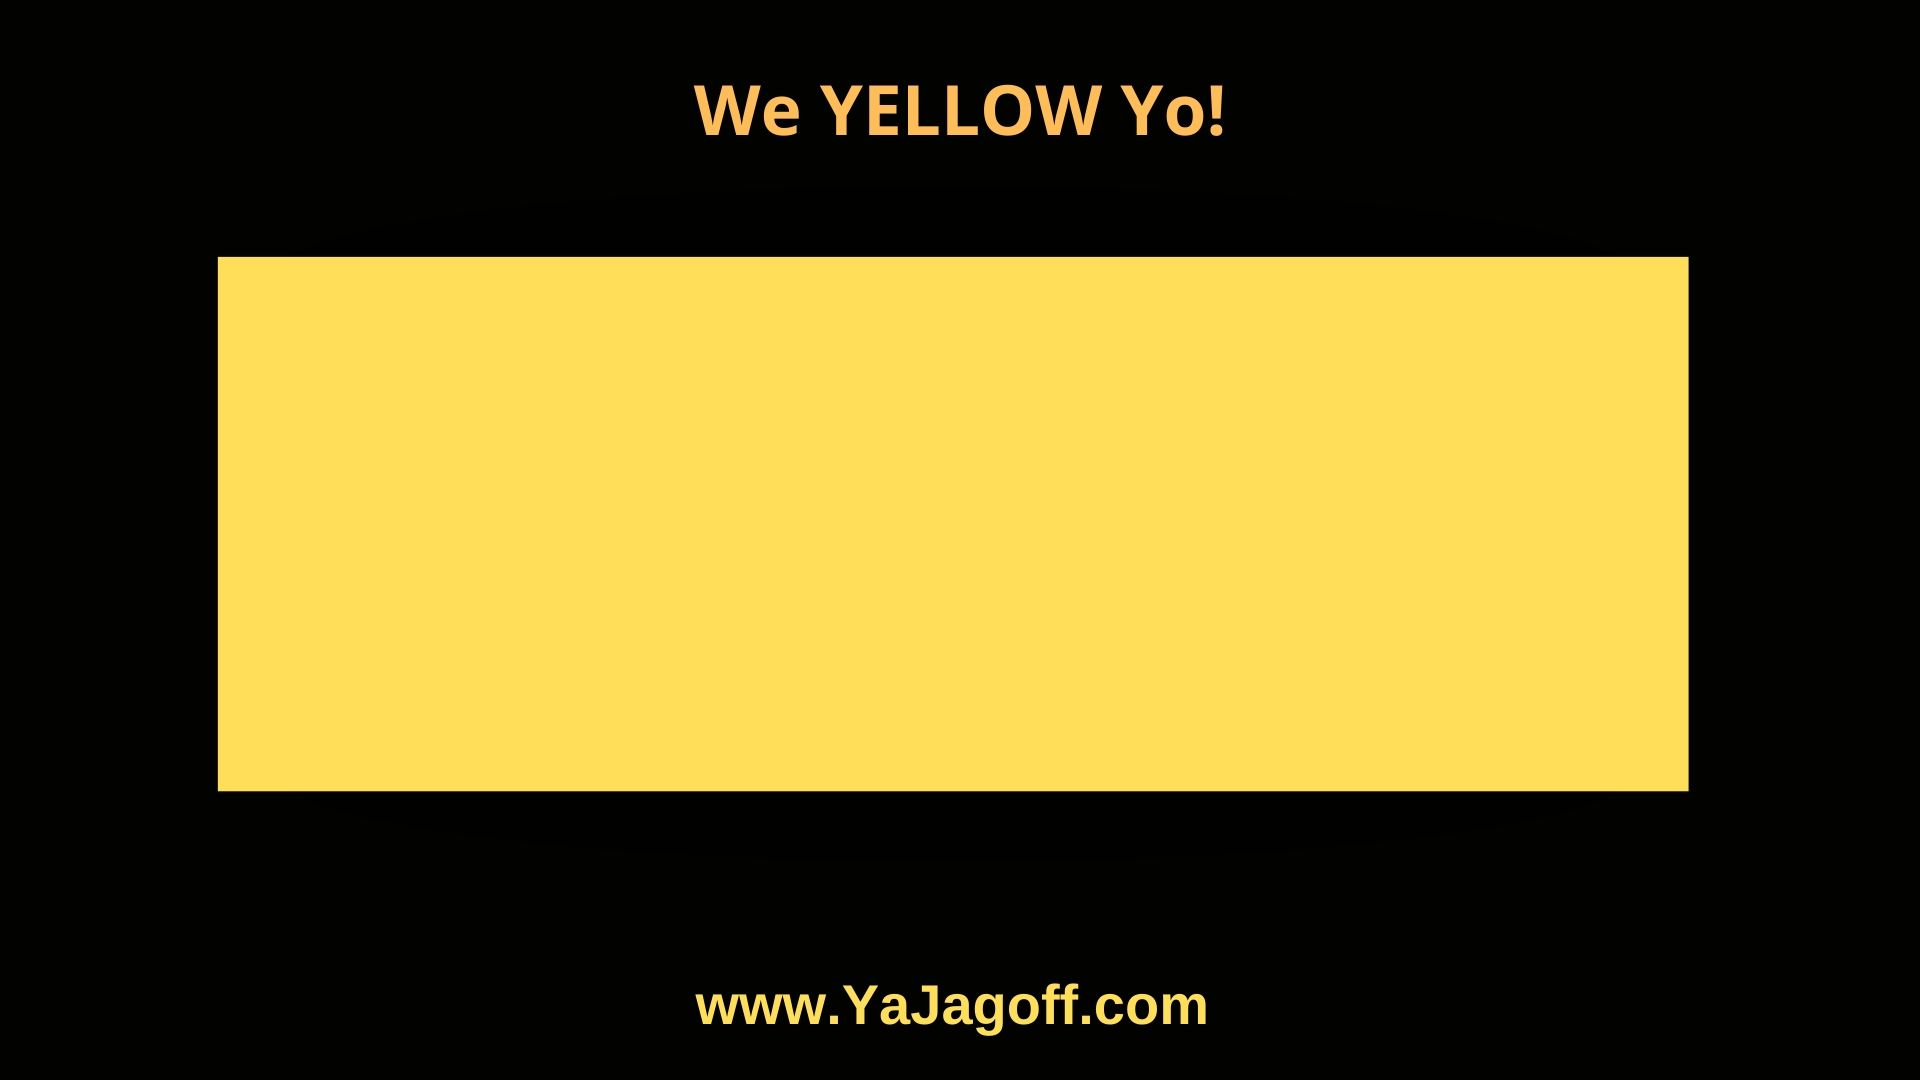 YaJagoffs are moving to Yellow